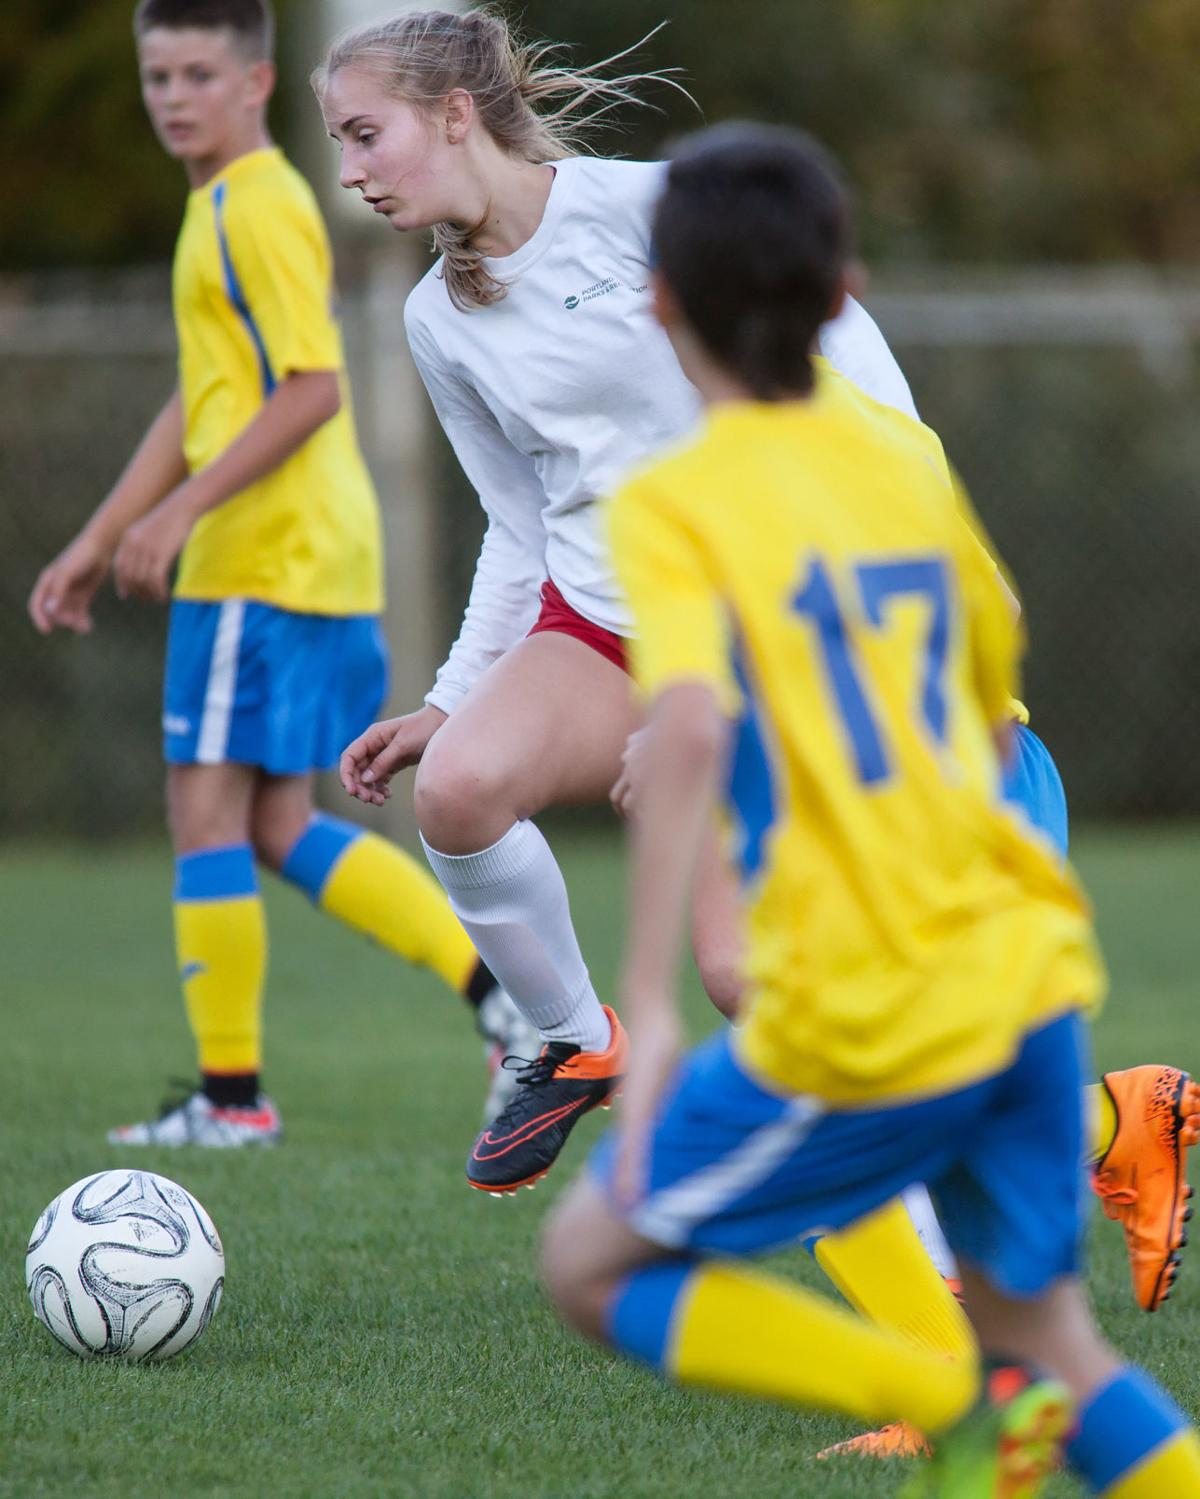 Experience will be key for all new girls soccer team